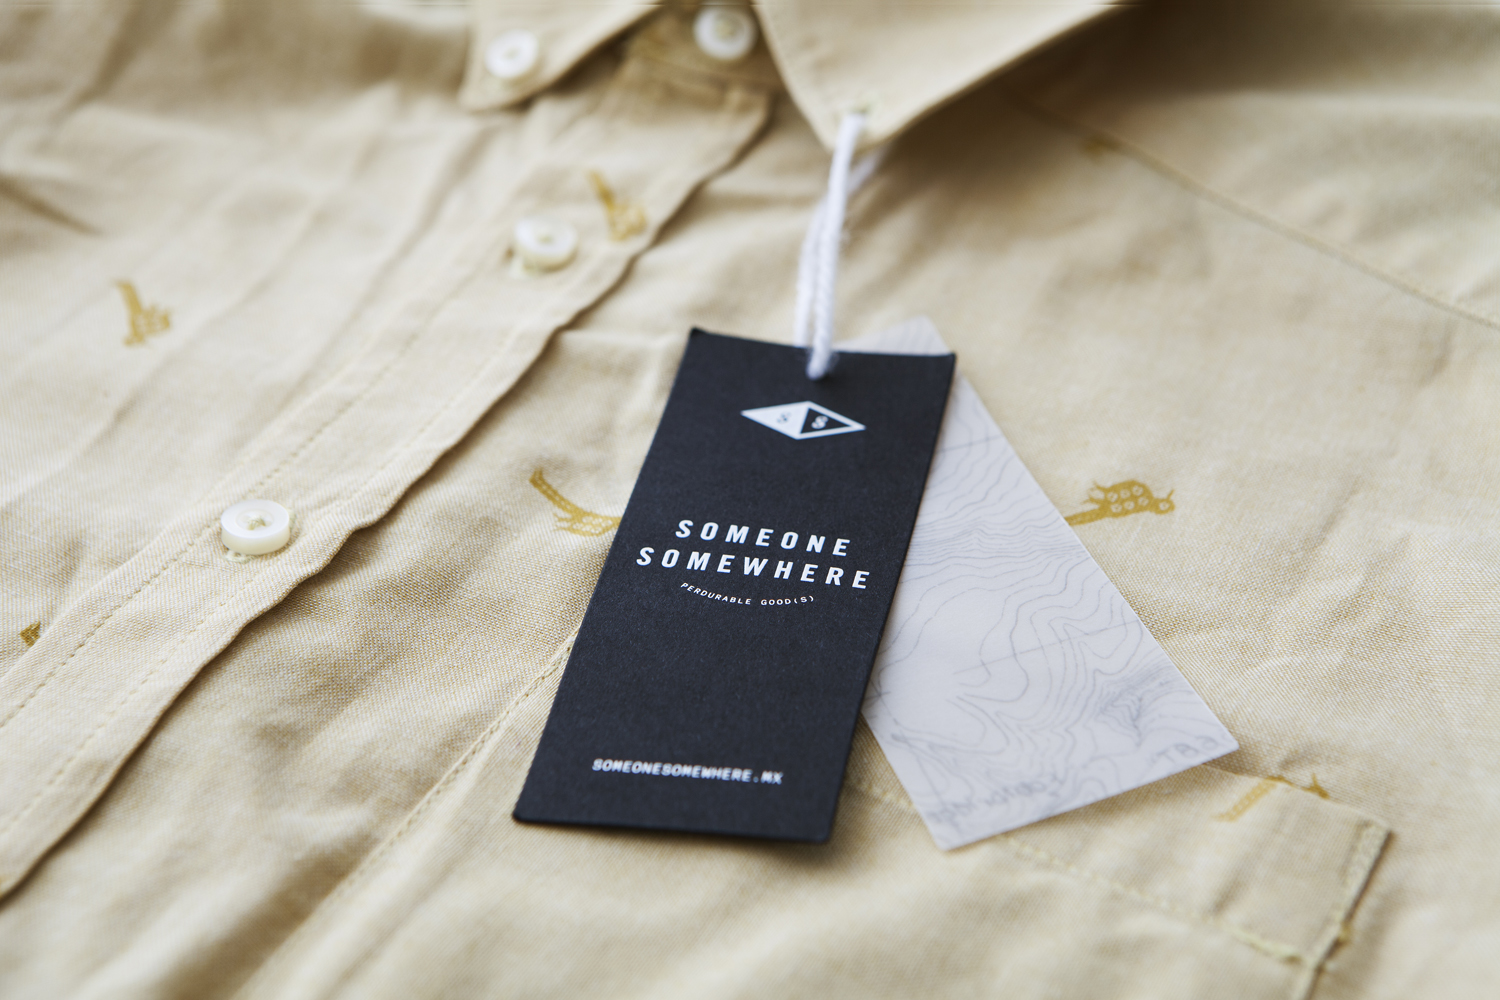 Logo, labels, business cards and tags by Sociedad Anonima for Mexican garment, bag and accessory brand Someone Somewhere